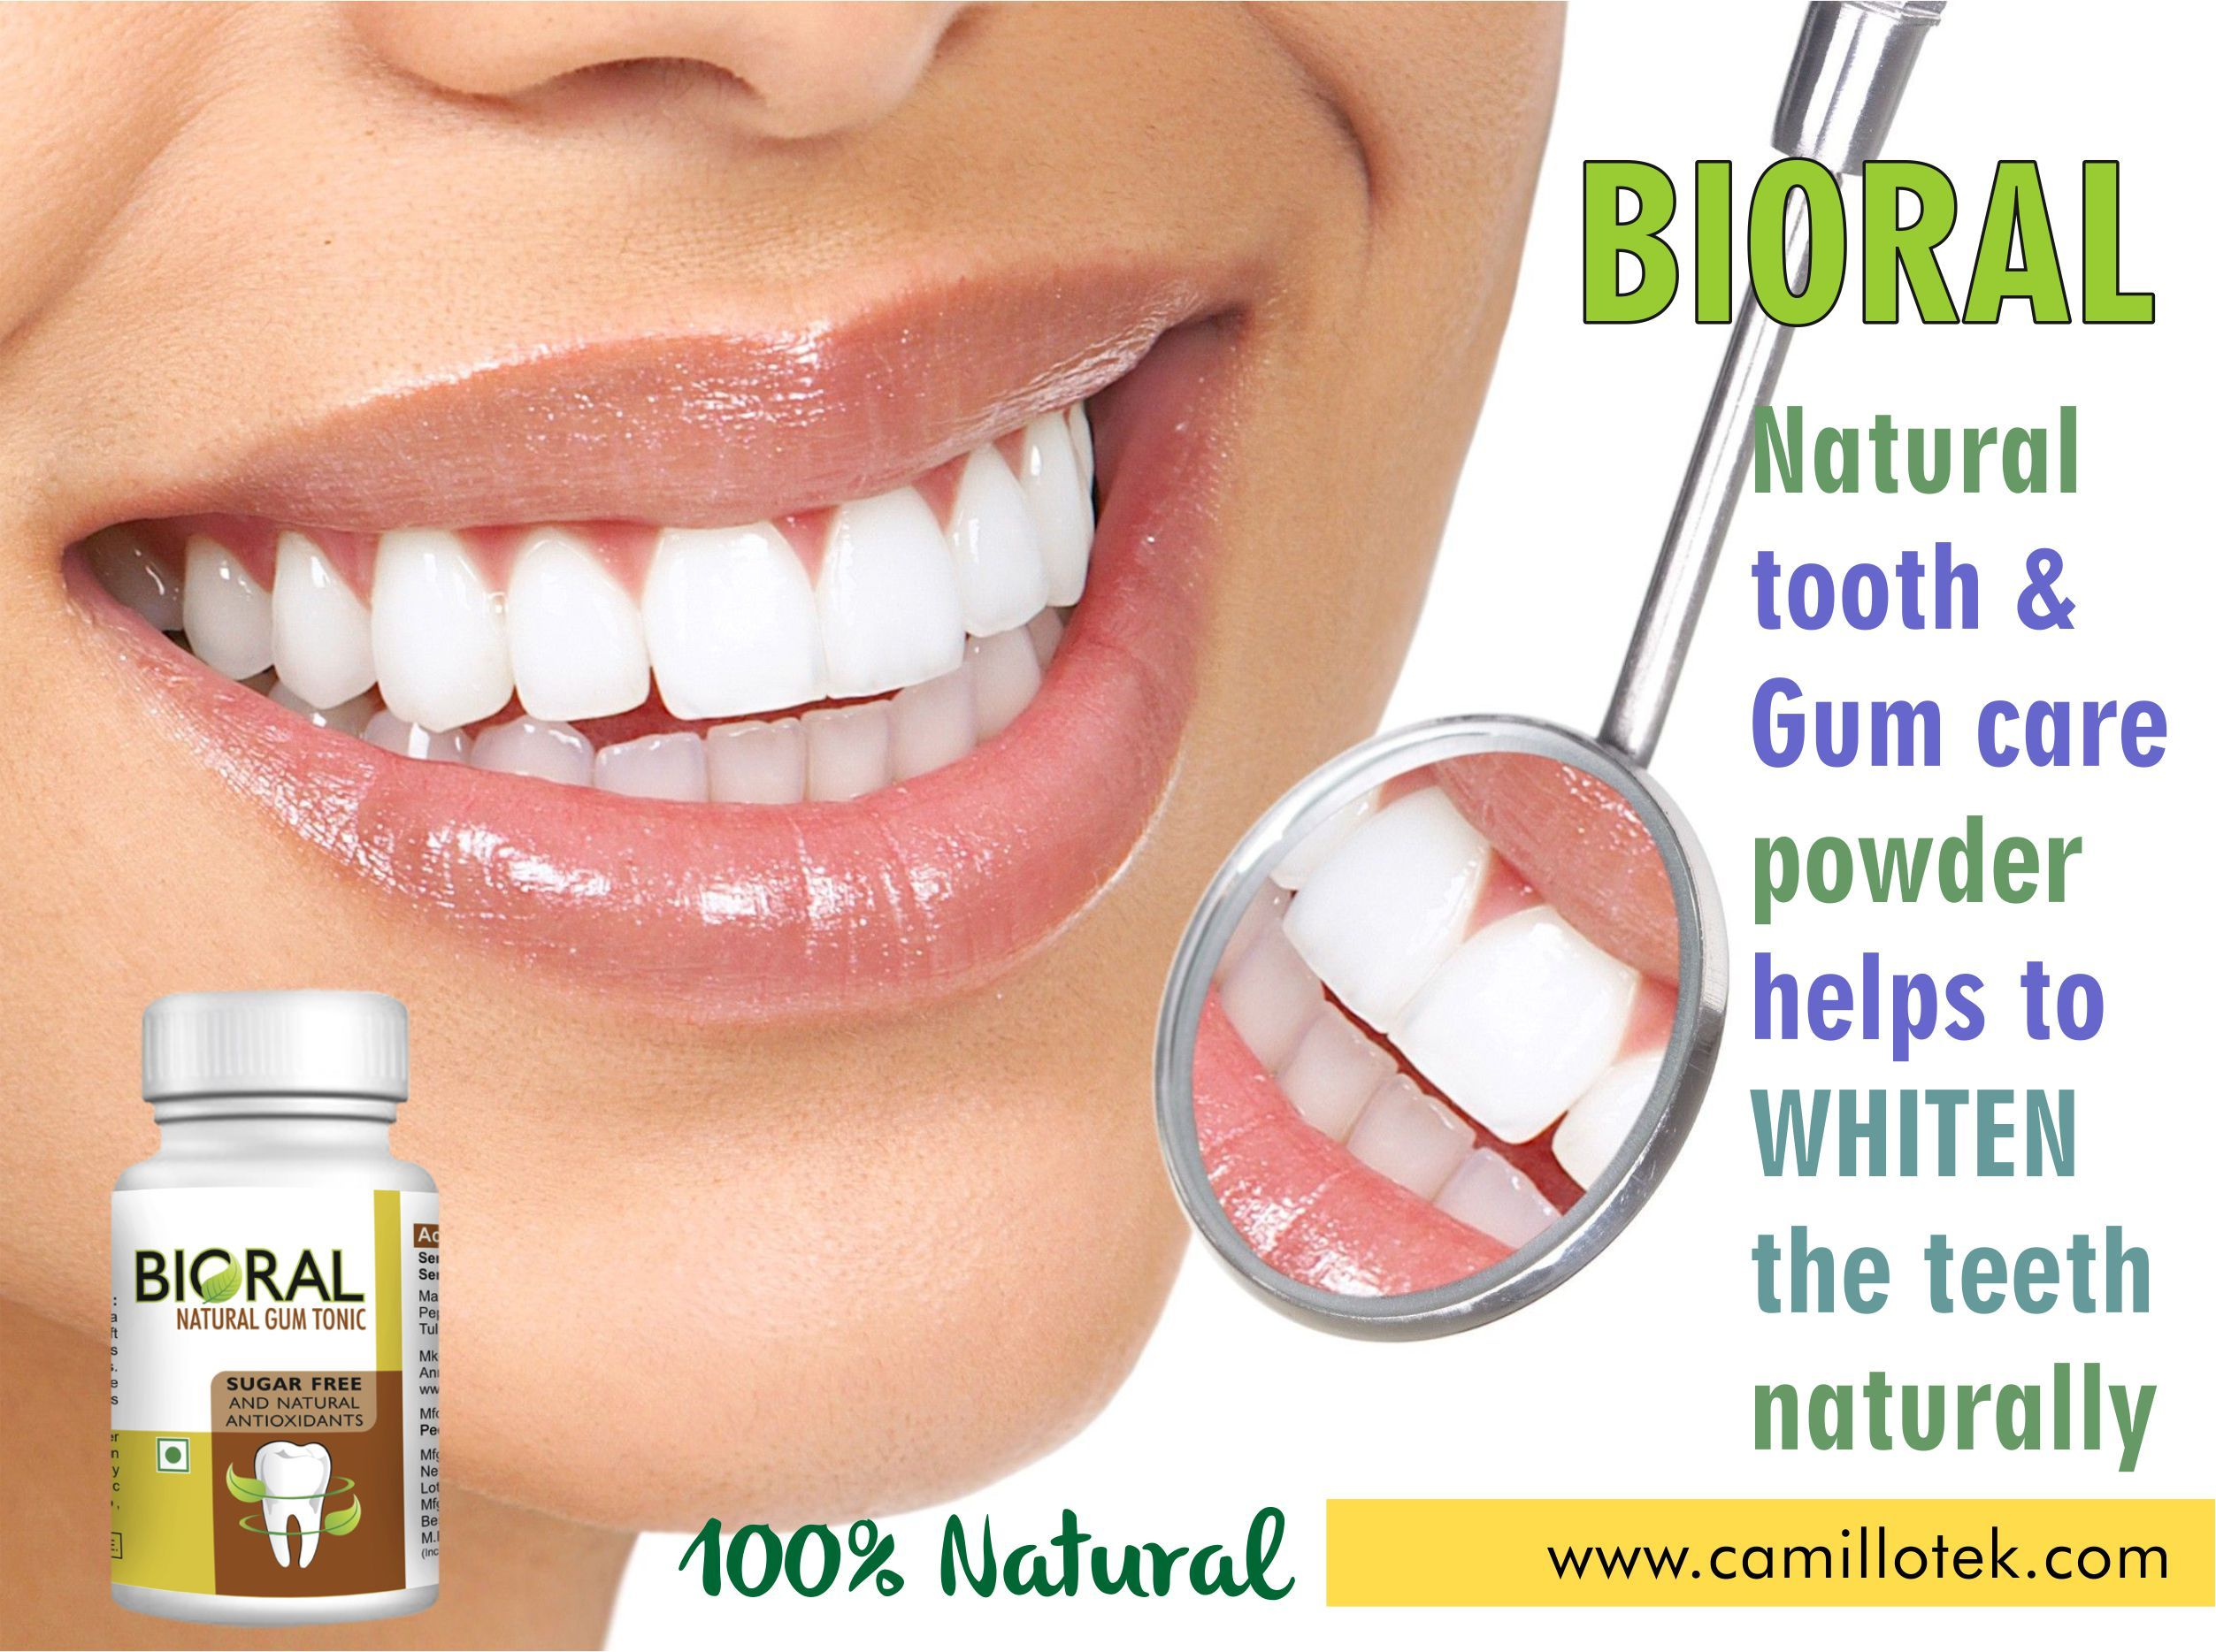 Benefits and harm of tooth powder